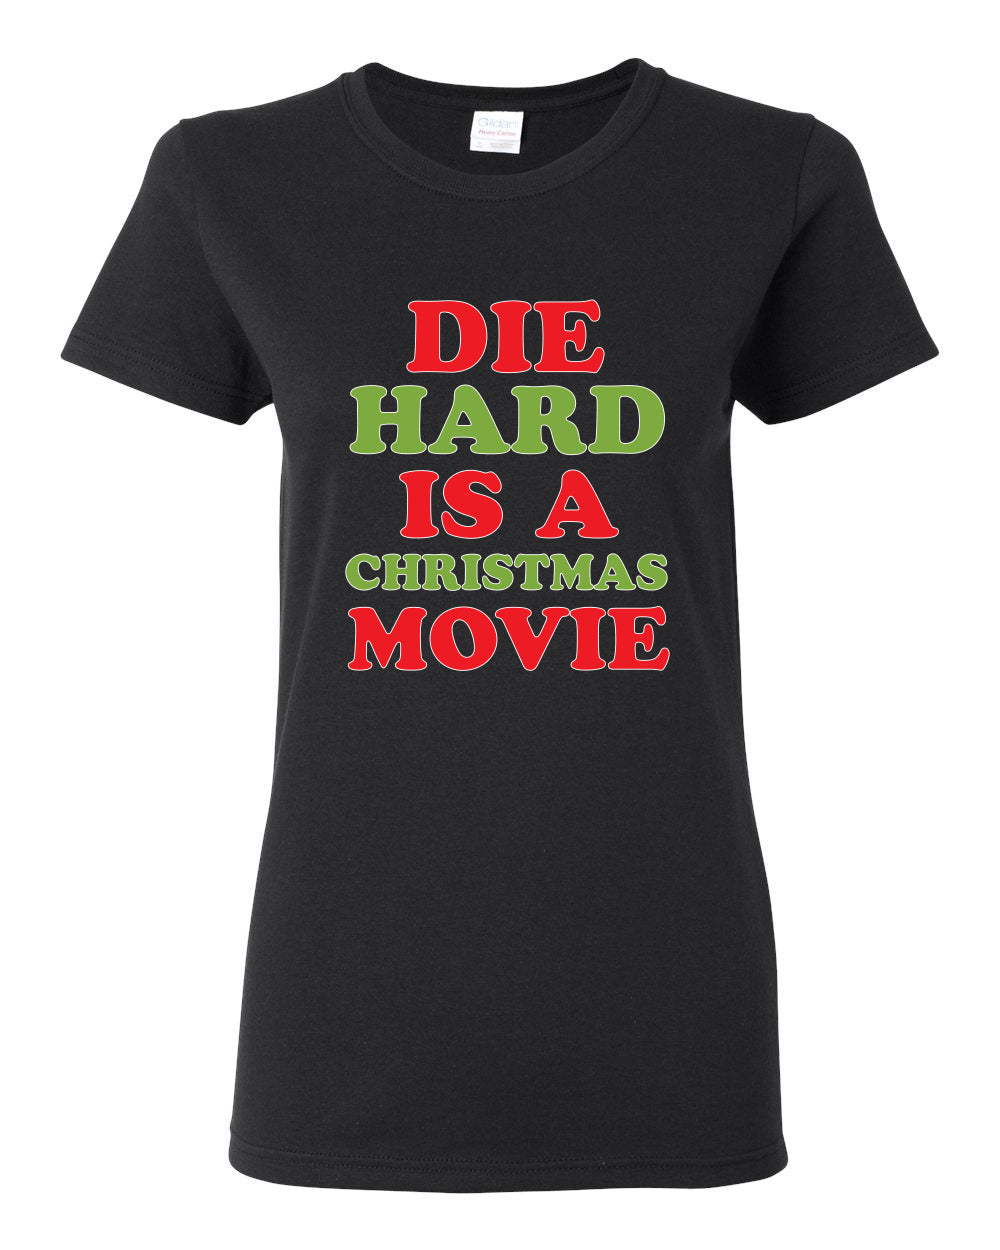 Die Hard is a Christmas Movie Christmas Womens Graphic T-Shirt